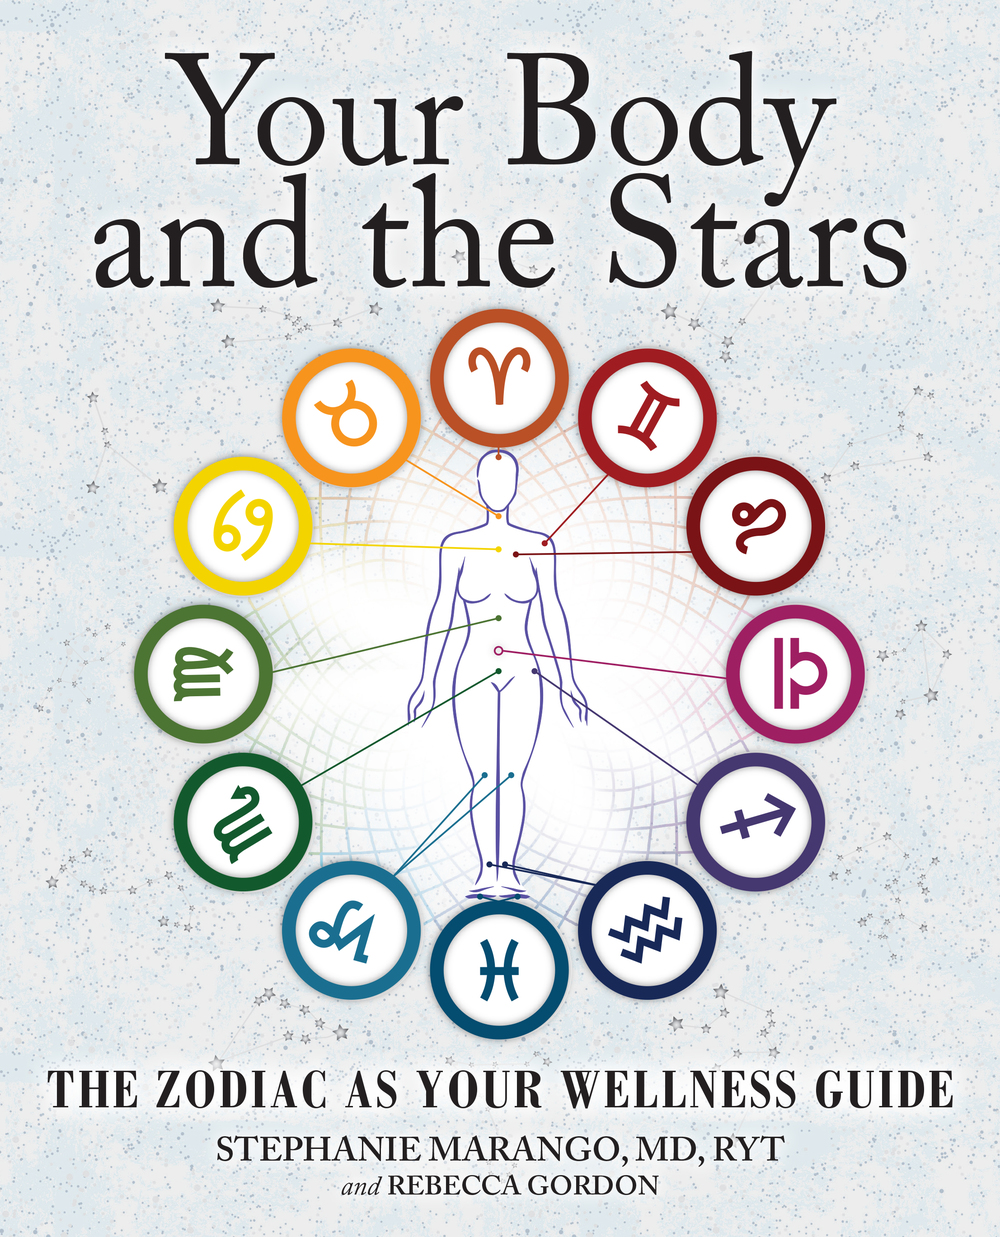 Buy our New Book on Amazon Today. Unlock your code to ideal health in this interactive astrology guide for well-being. -